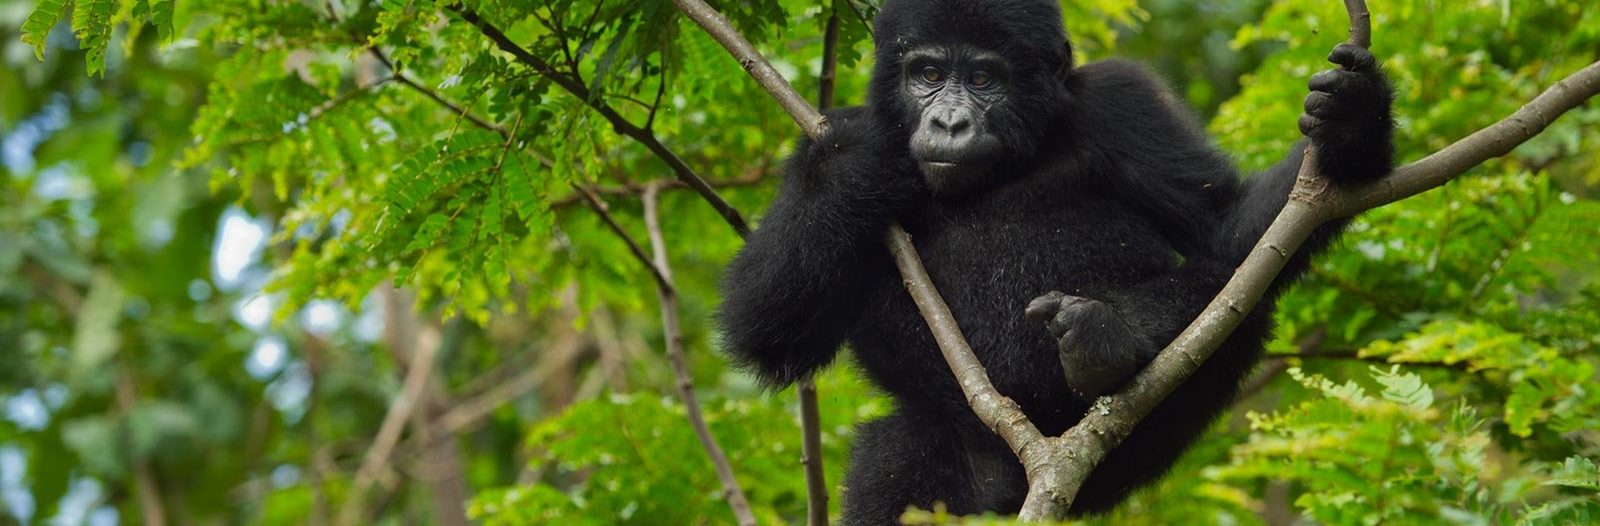 Top 24 Wildlife Animals to See in Uganda